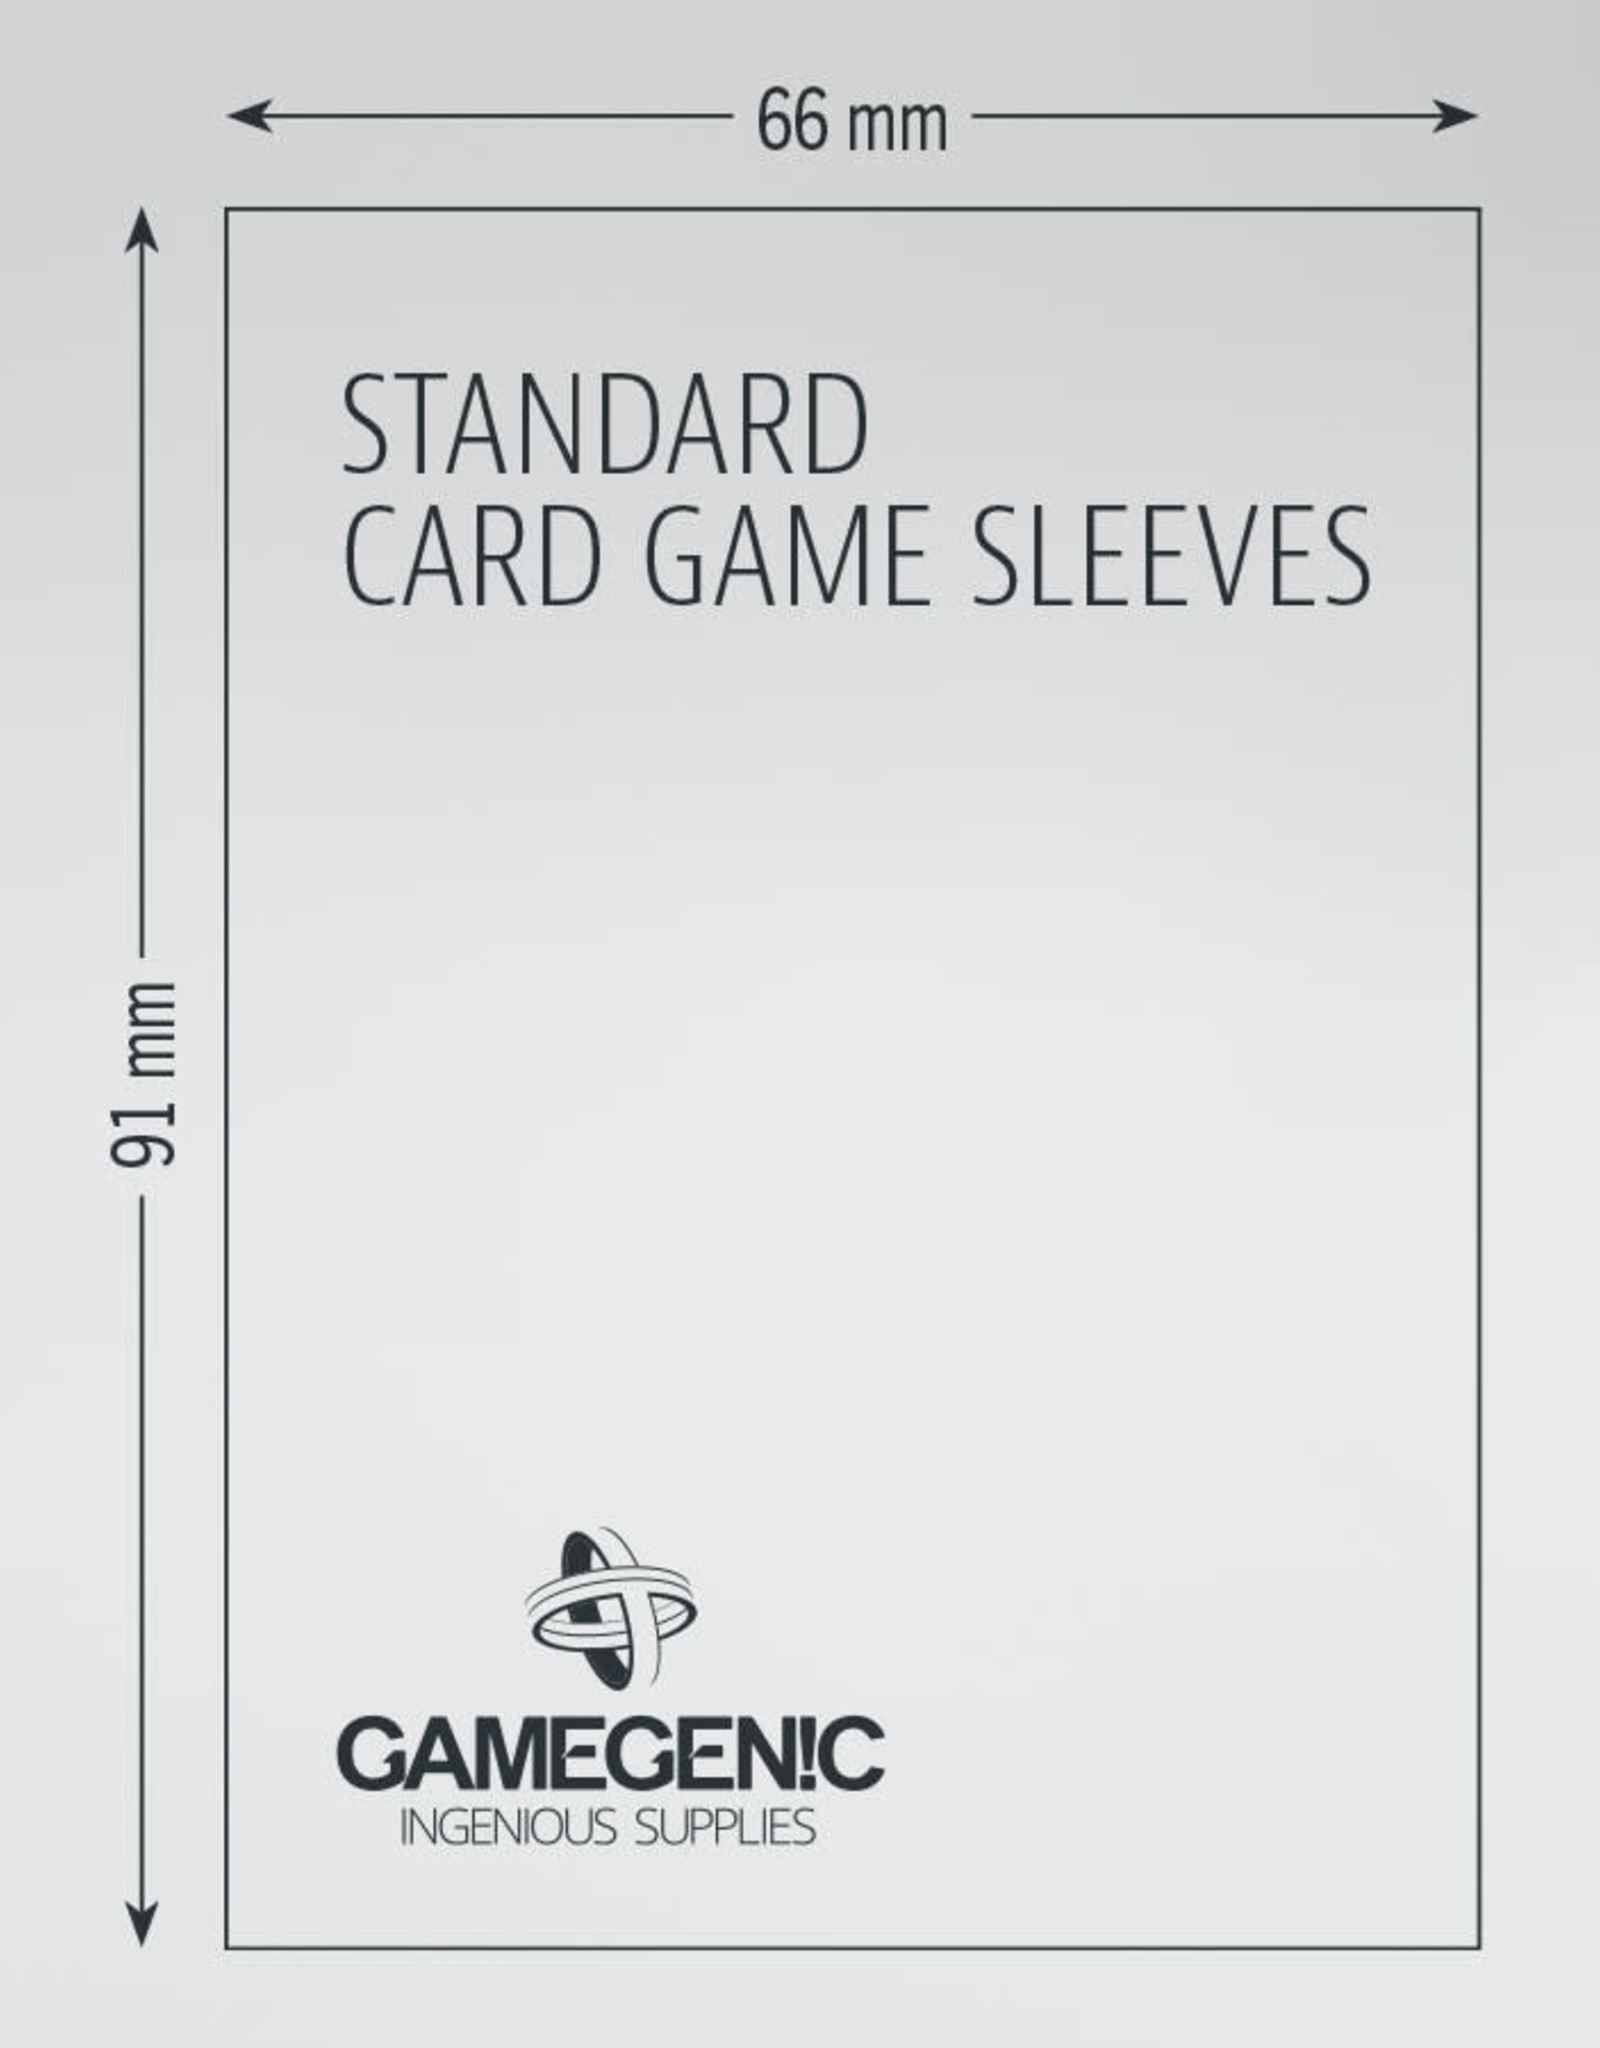 Prime Board Game Sleeves: Standard Card Game Sleeves 66mm x 91mm (50) (Gray)